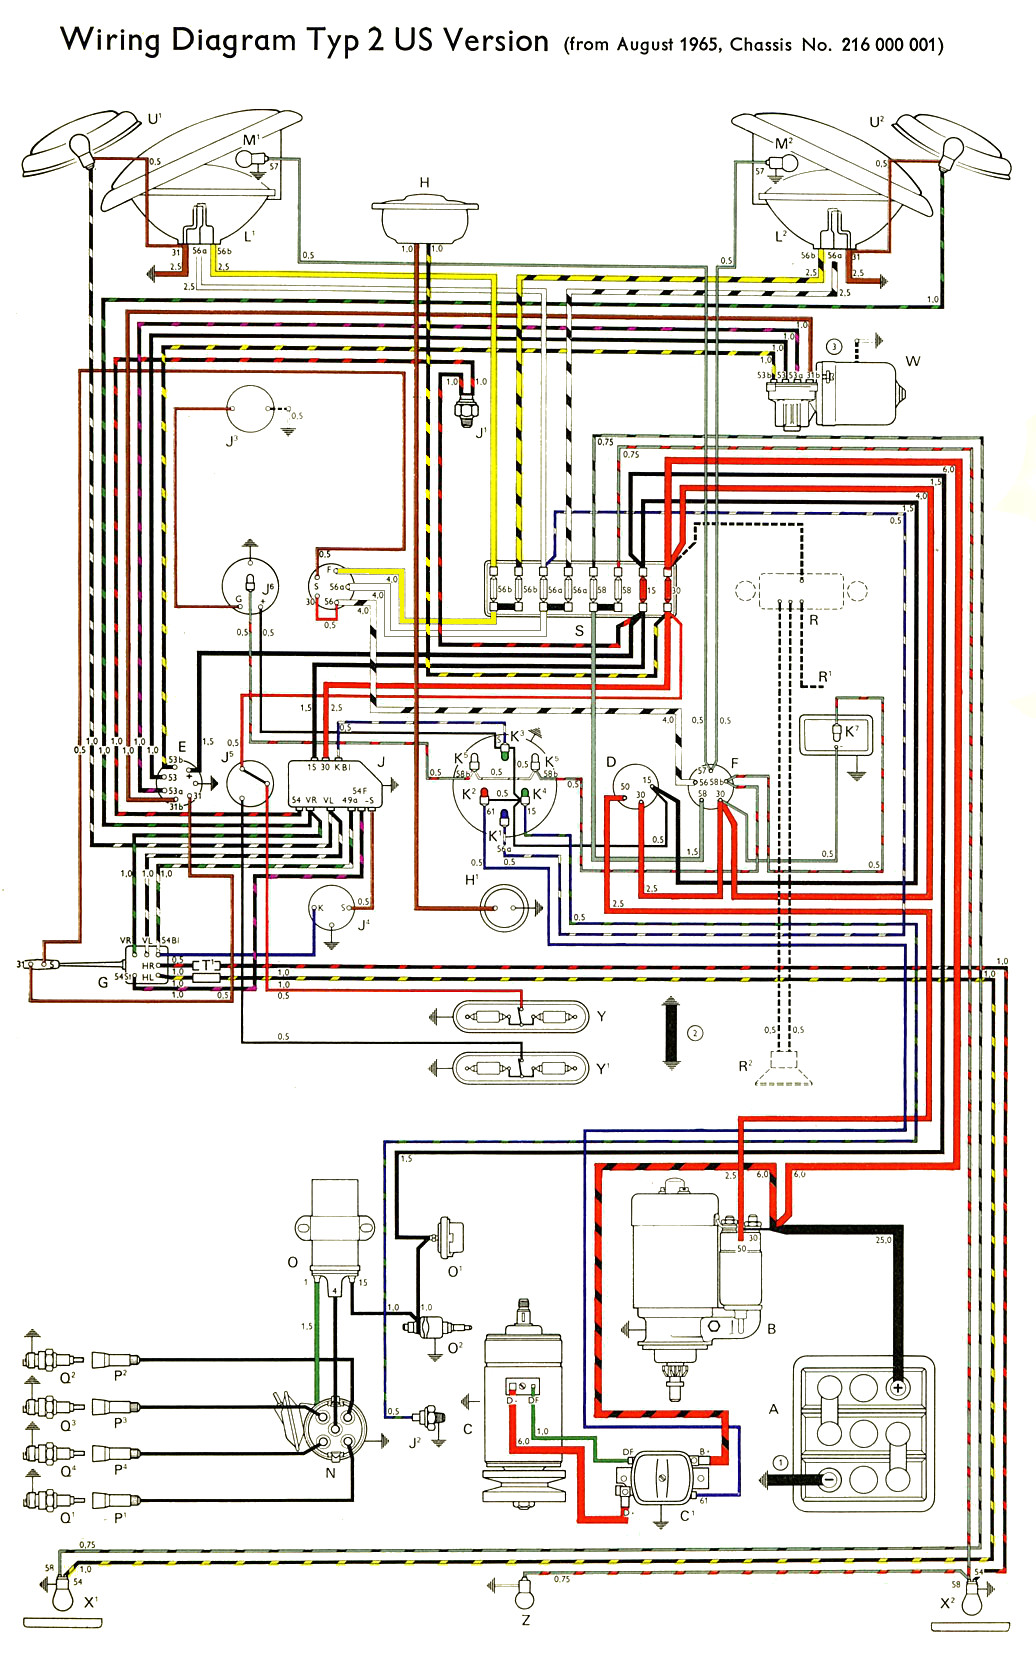 Schema Elettrico Golf 7 : Thesamba.com :: type 2 wiring diagrams